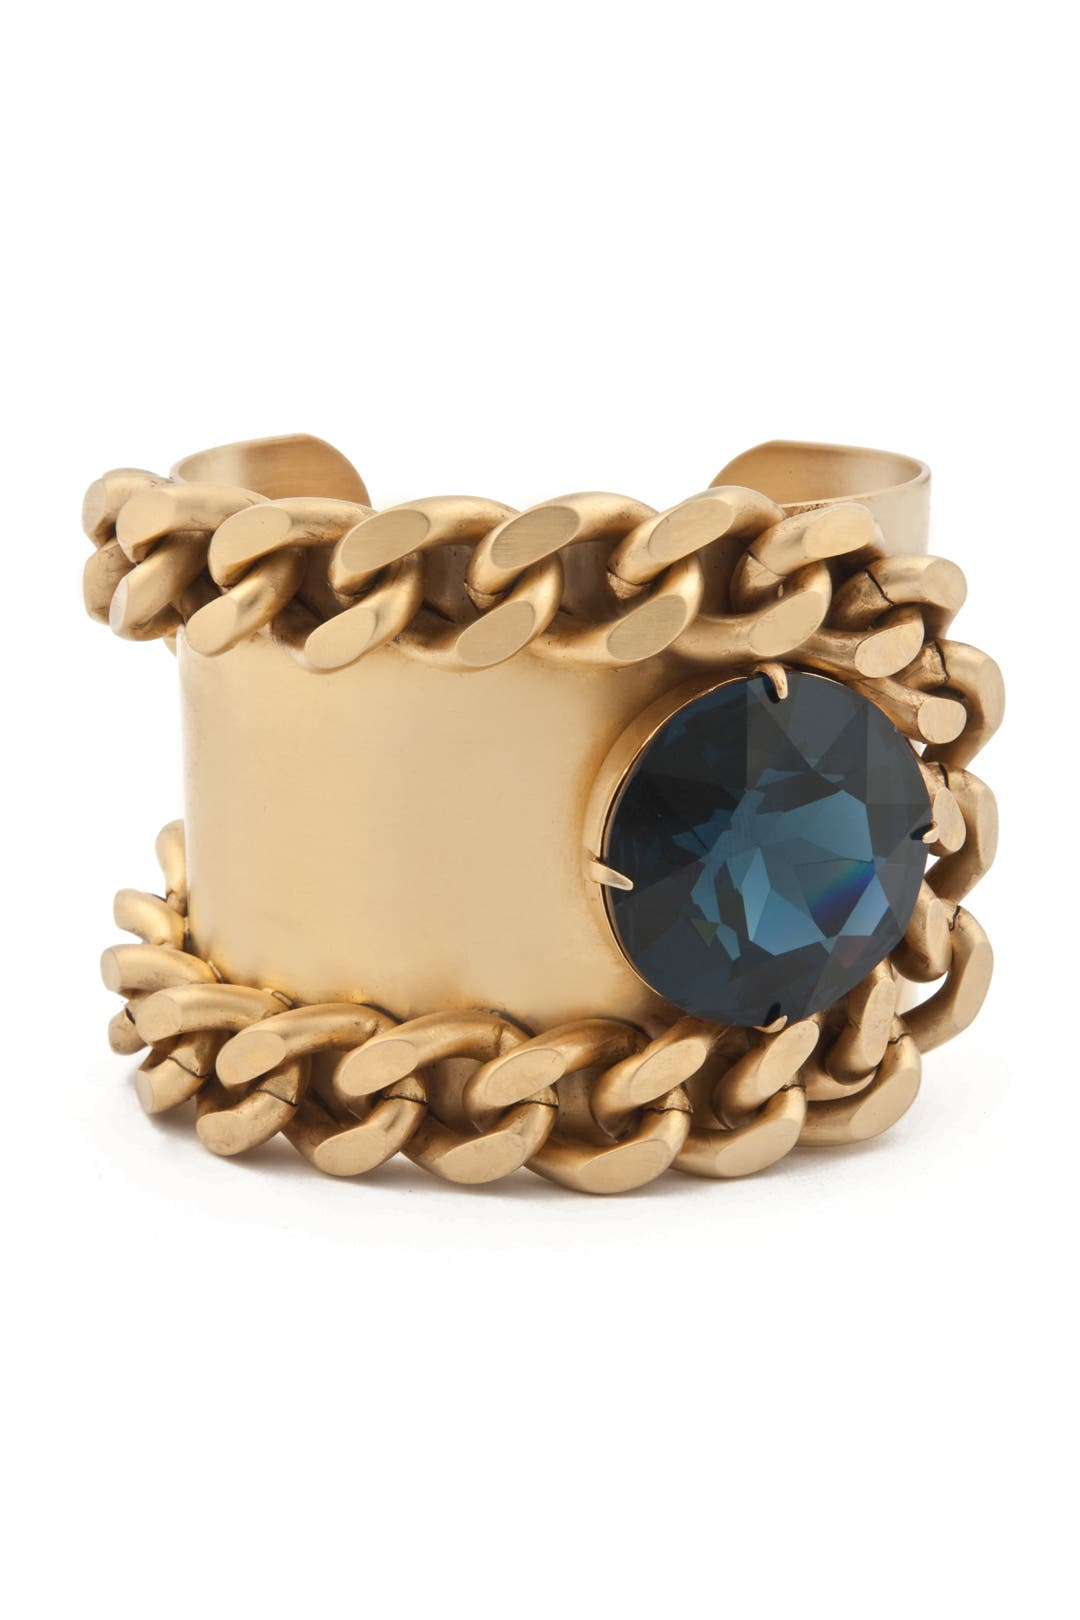 A Little Nautical Cuff by Janis Savitt